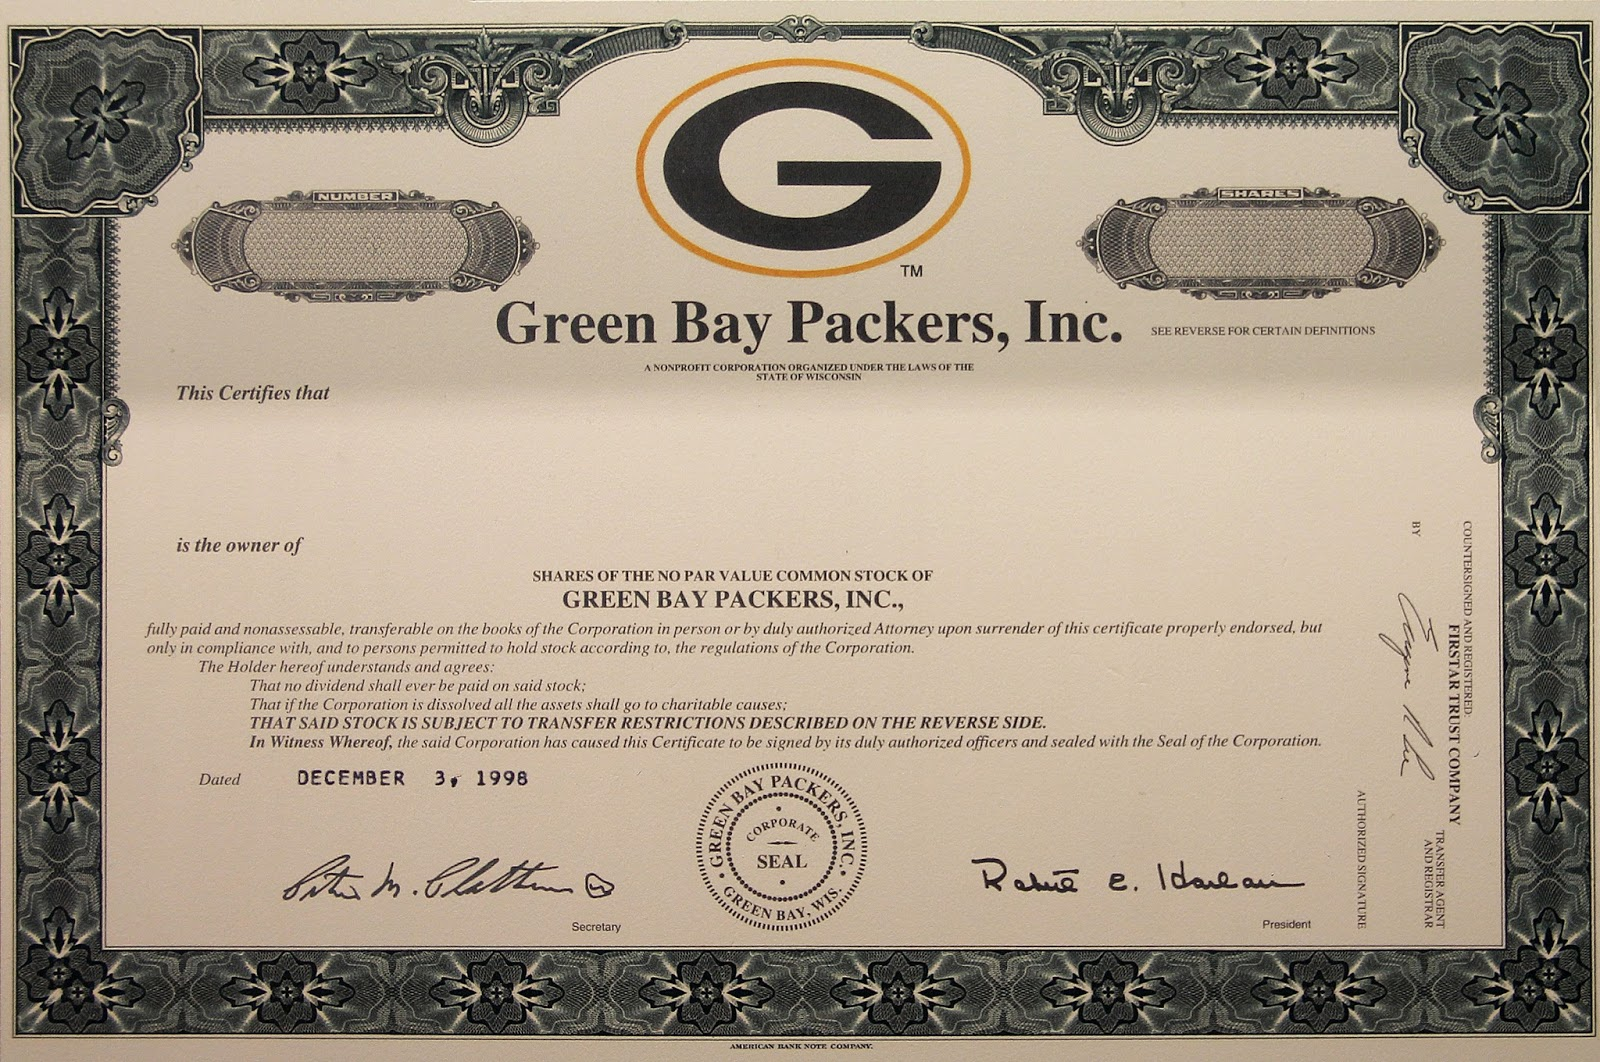 certificate certificates history packer packers bay paper imgflip bears owner chicago early